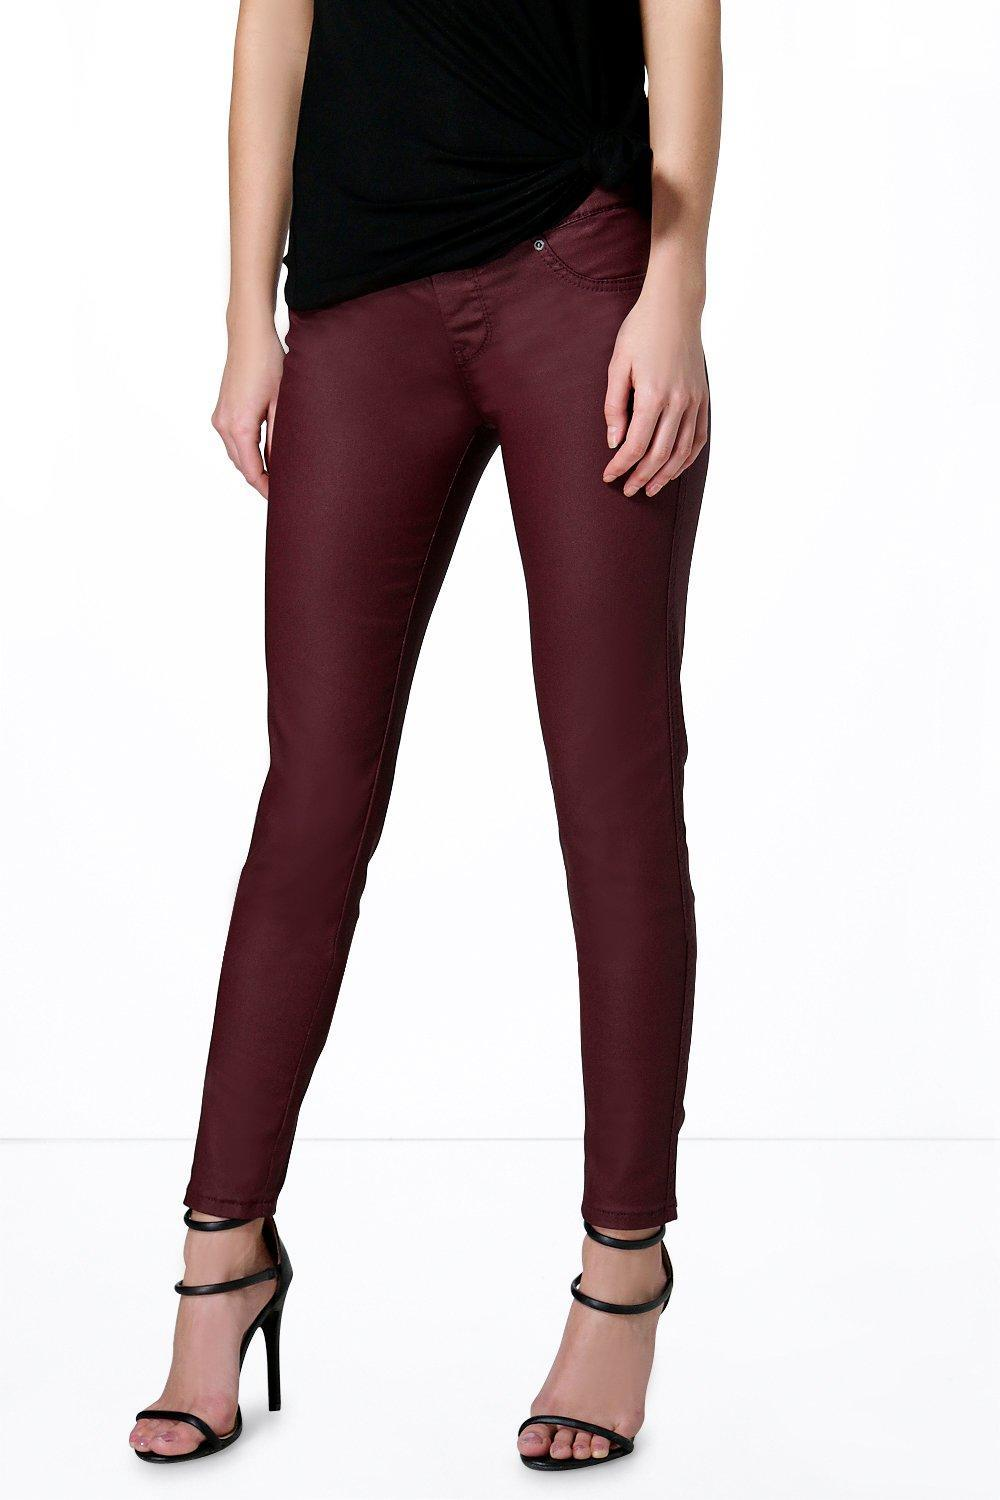 Pull On Leather Look Jeggings Berry - pattern: plain; waist: mid/regular rise; predominant colour: burgundy; length: ankle length; fibres: polyester/polyamide - stretch; texture group: leather; fit: slim leg; pattern type: fabric; style: standard; occasions: creative work; season: a/w 2015; wardrobe: highlight